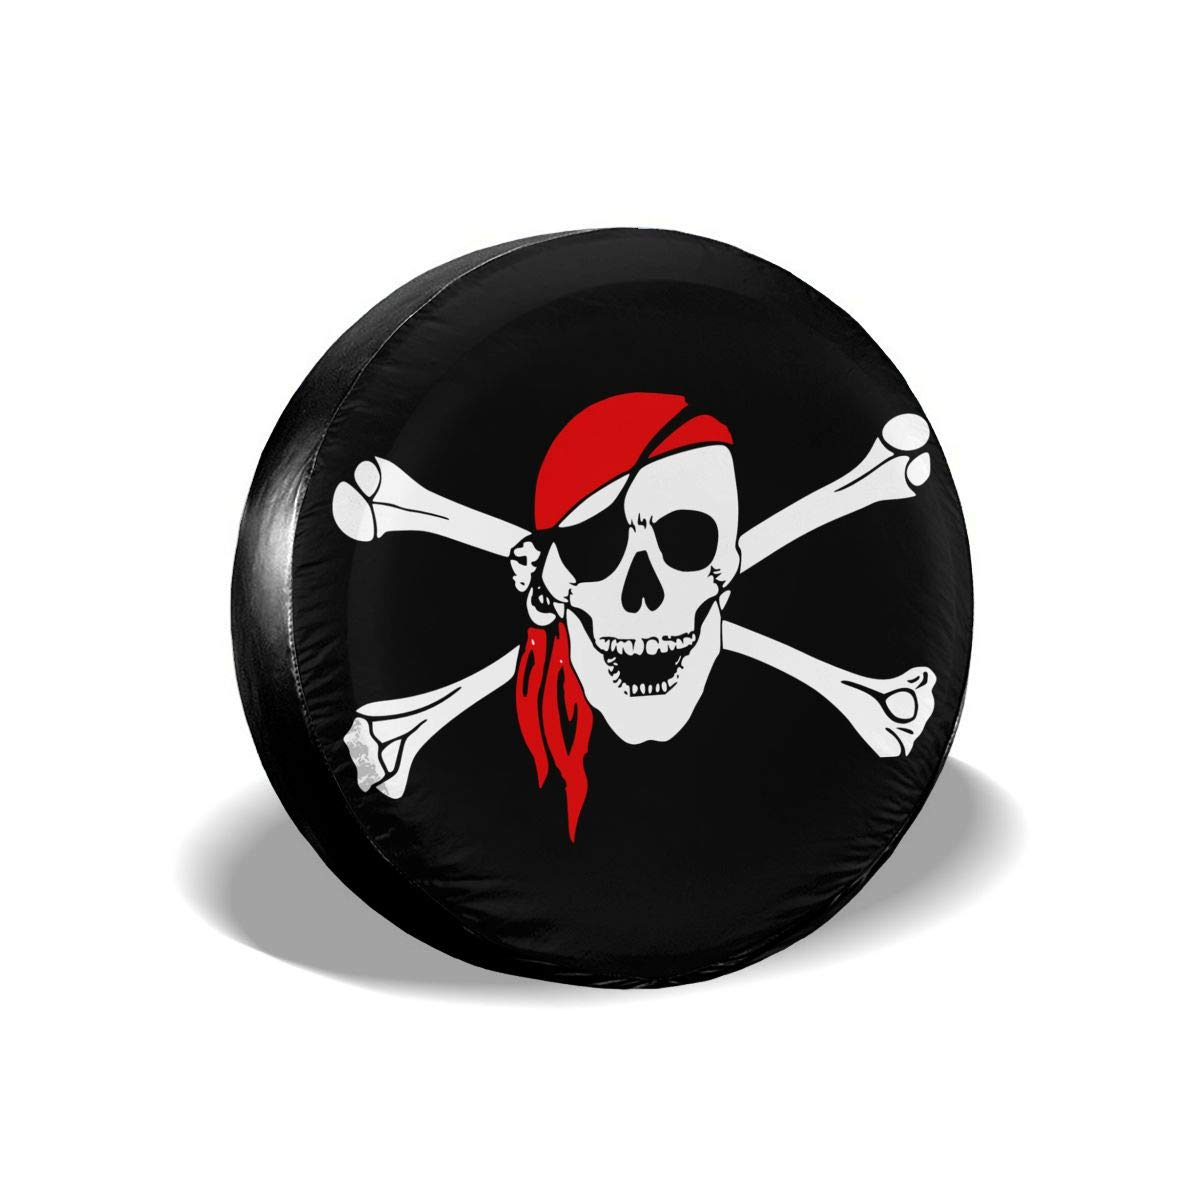 PINE-TREE-US Pirate Flag Skull Spare Wheel Tire Cover Waterproof Dust-Proof Fit for Trailer SUV and Many Vehicle 14 15 16 17 RV